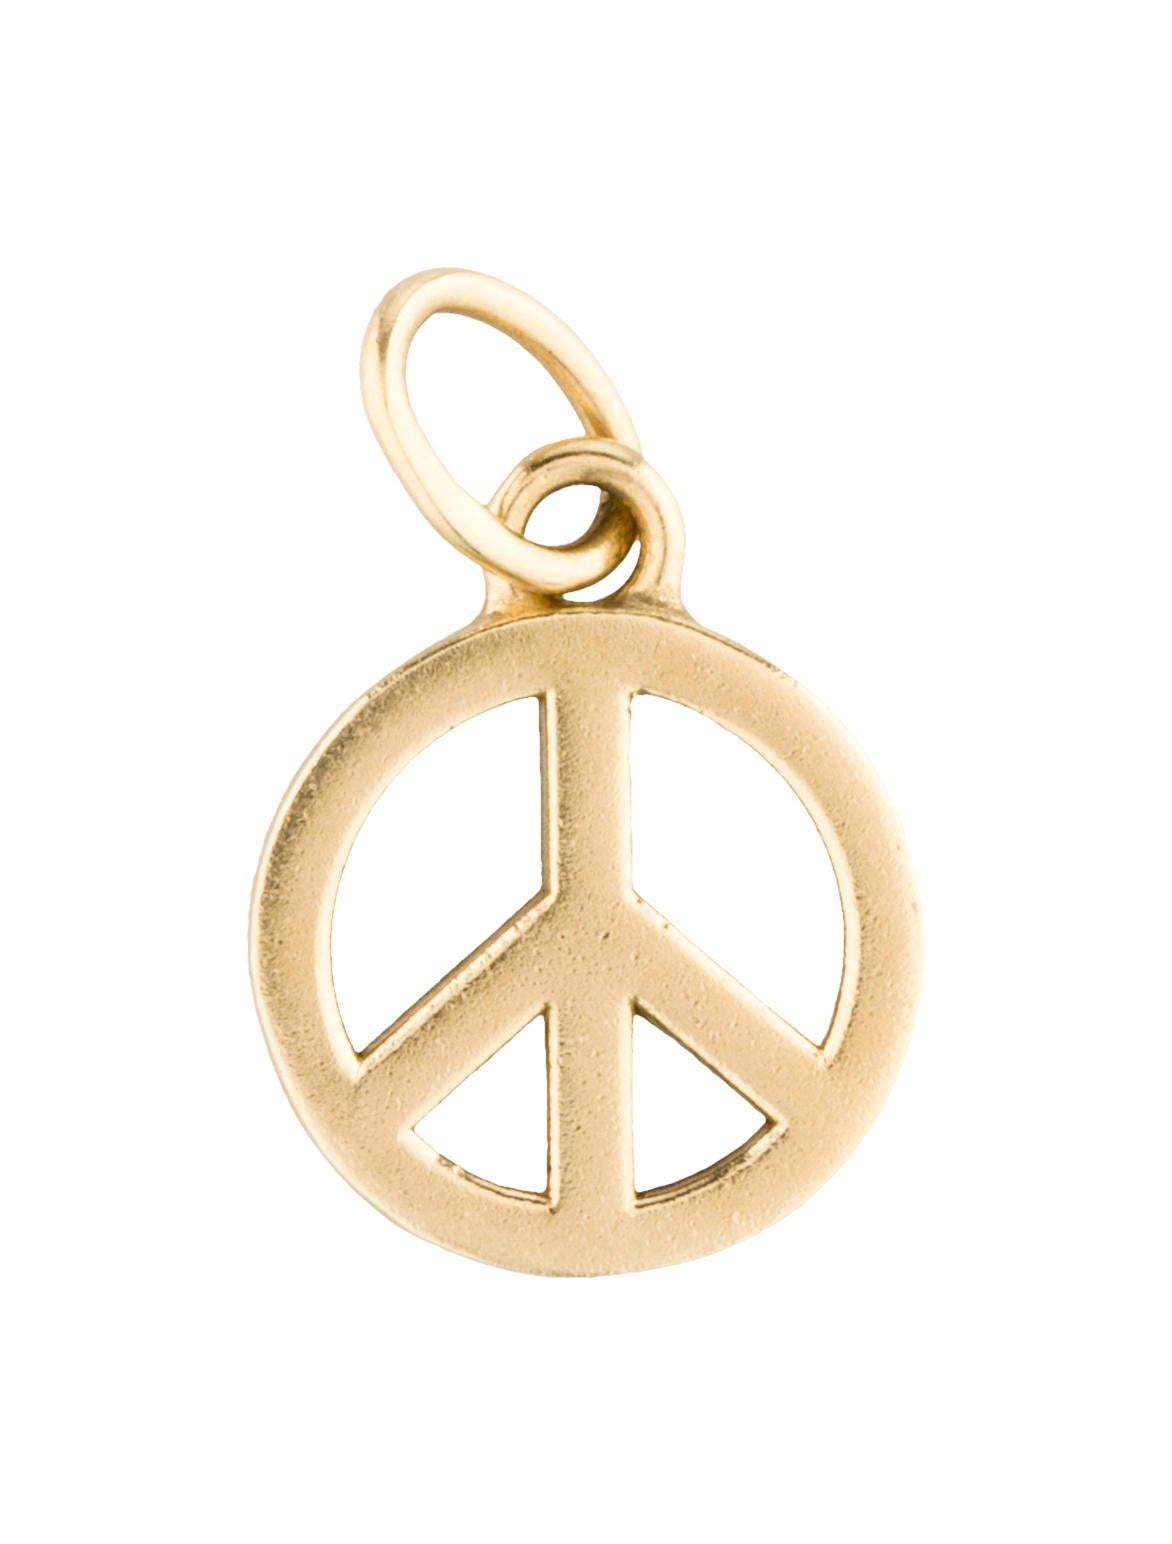 Tiffany co 18k gold peace sign pendant necklaces tif27766 18k gold peace sign pendant mozeypictures Choice Image